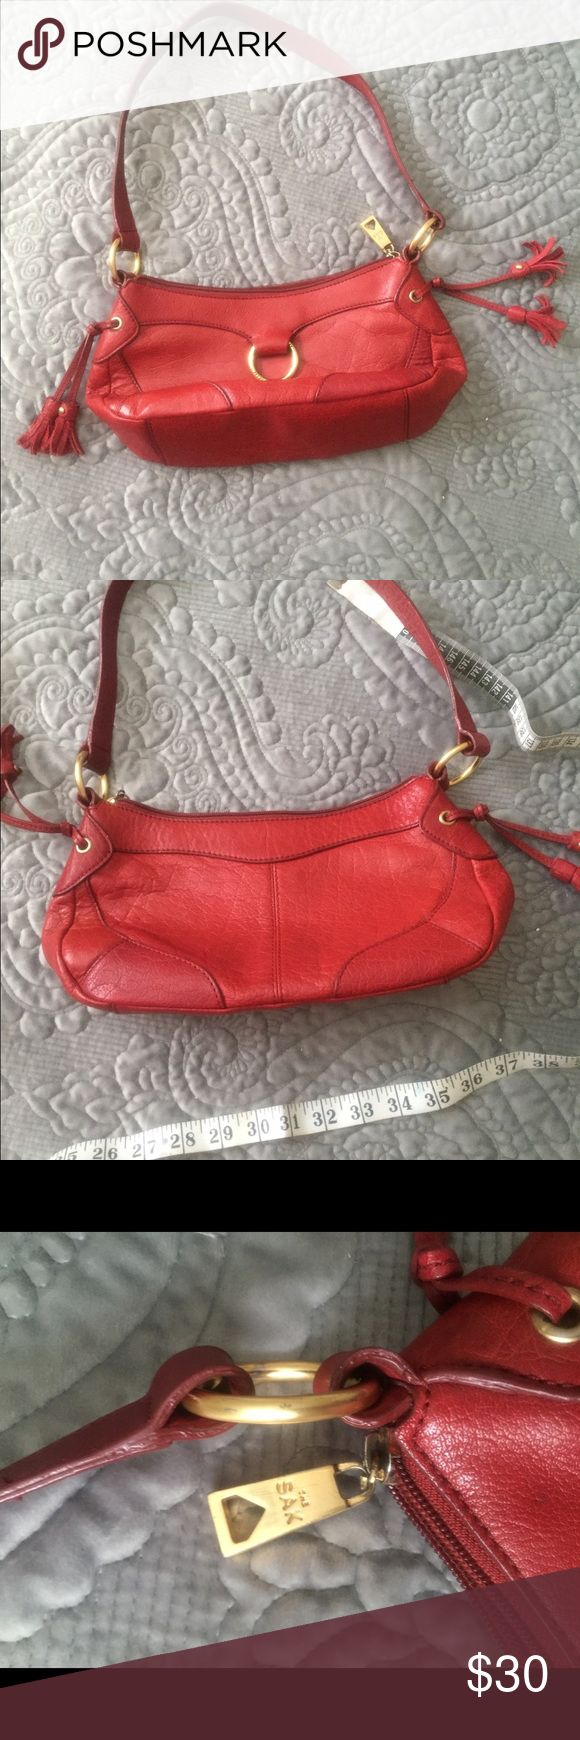 The Sak Red Shoulder Bag Very Cute Red Leather Shoulder Bag Gently Used  No Tears/Stains in Great Condition. The Sak Bags Shoulder Bags